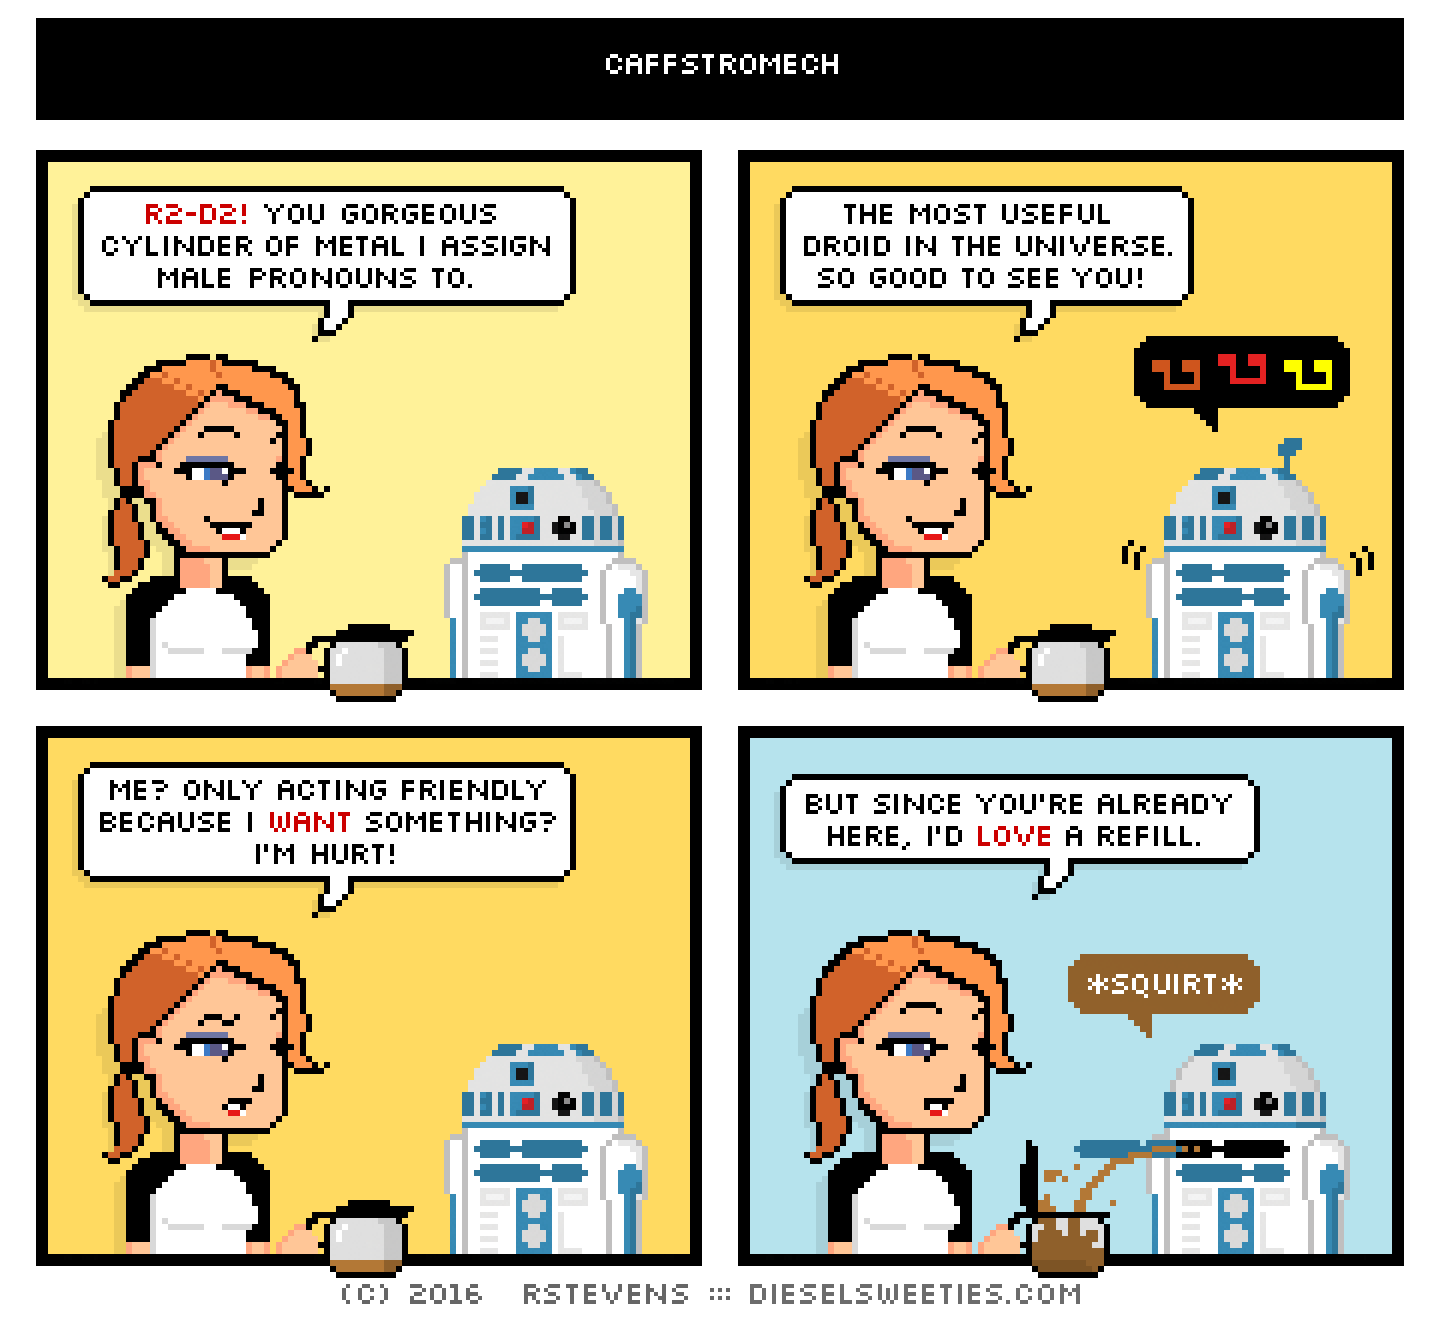 maura, holding coffee pot, r2-d2 : r2-d2! you gorgeous cylinder of metal i assign male pronouns to. the most useful droid in the universe. so good to see you! angry musical notes me? only acting friendly because i want something? i'm hurt! but since you're already here, i'd love a refill. *squirt*